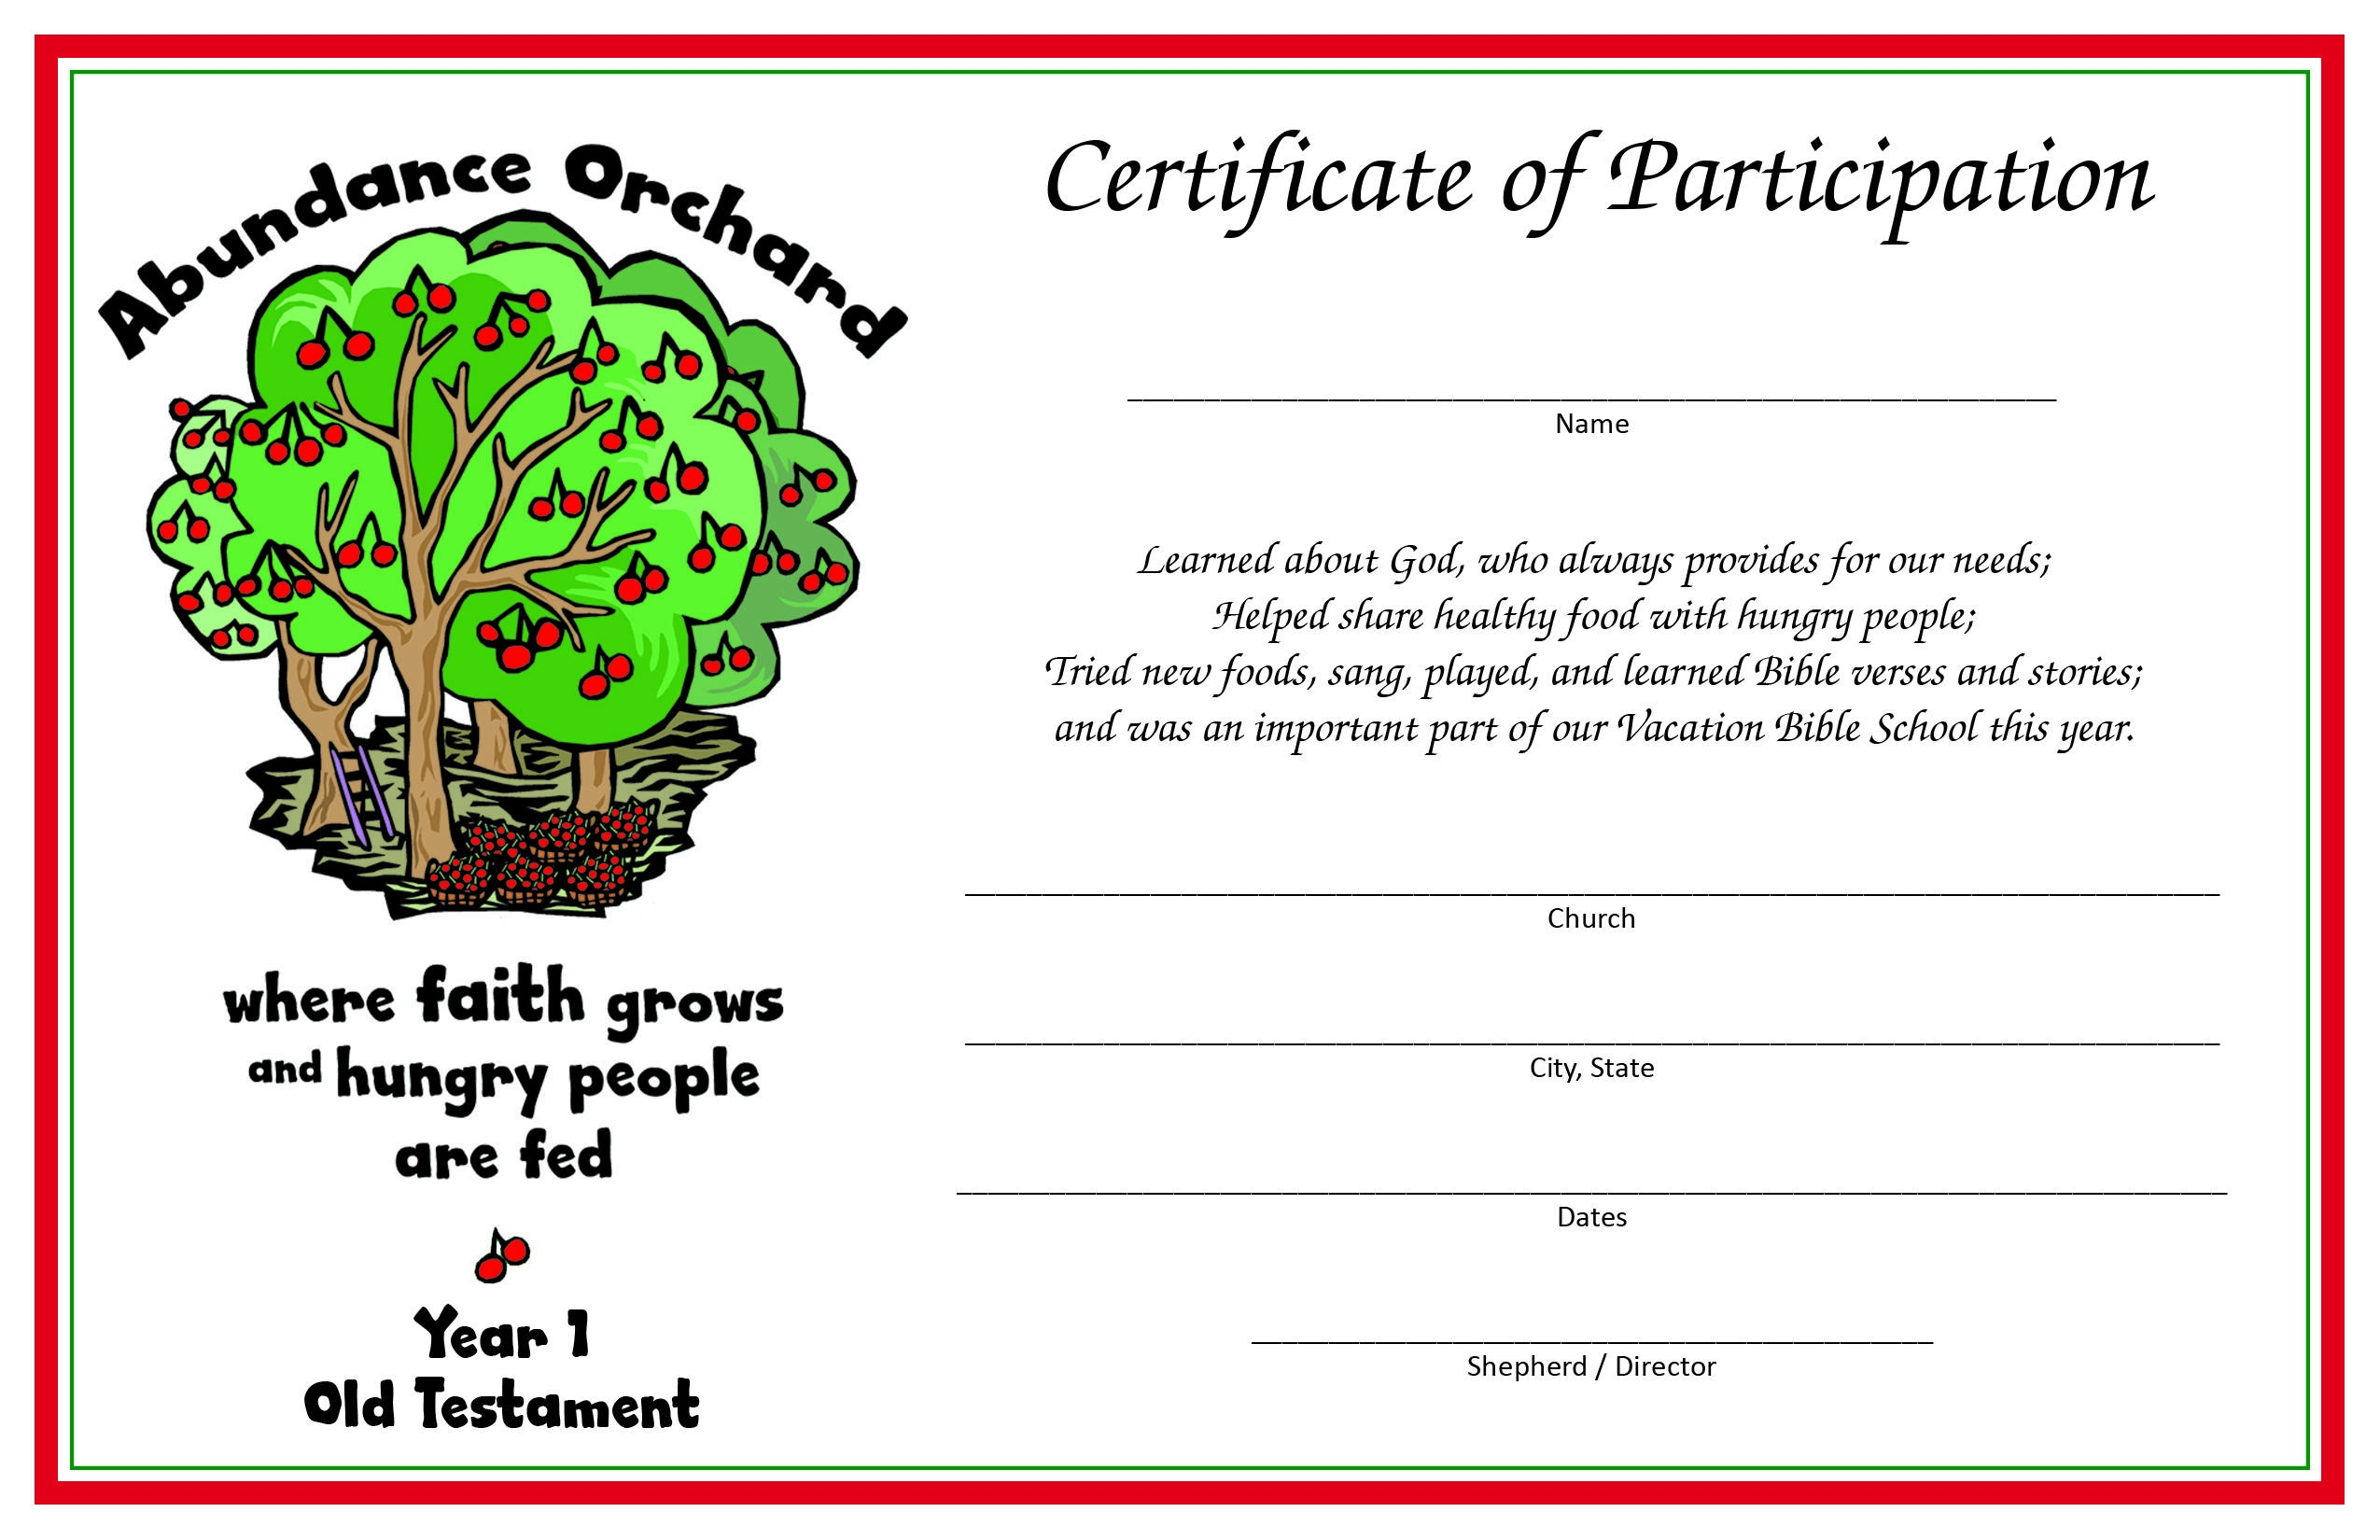 Vacation Bible School Programs ~ The Society Of St. Andrew - Free Printable Vacation Bible School Materials